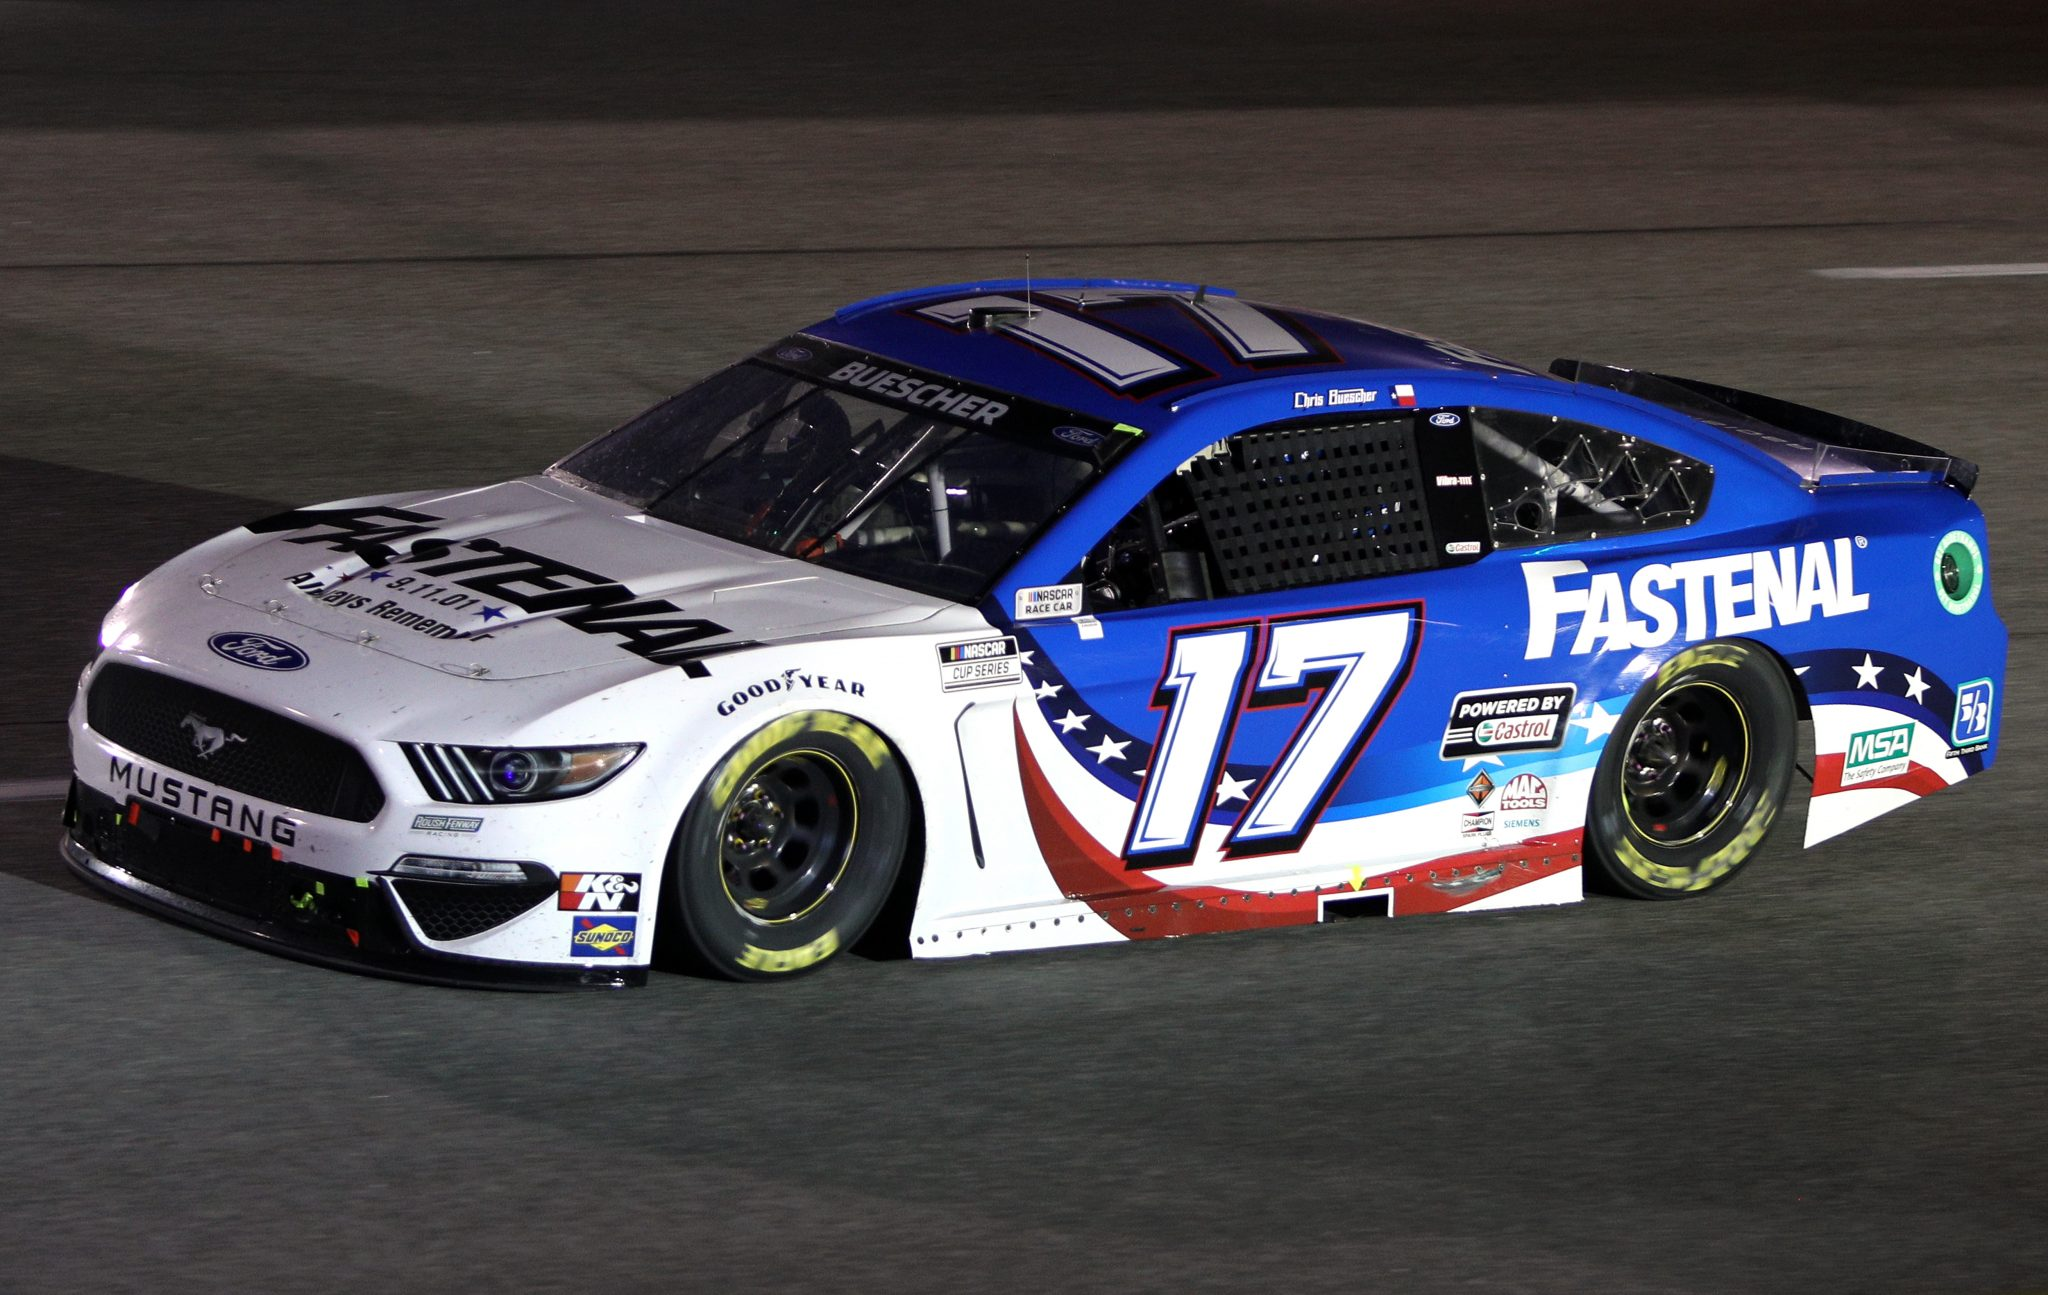 RICHMOND, VIRGINIA - SEPTEMBER 11: Chris Buescher, driver of the #17 Fastenal Ford, drives during the NASCAR Cup Series Federated Auto Parts 400 Salute to First Responders at Richmond Raceway on September 11, 2021 in Richmond, Virginia. (Photo by Sean Gardner/Getty Images) | Getty Images